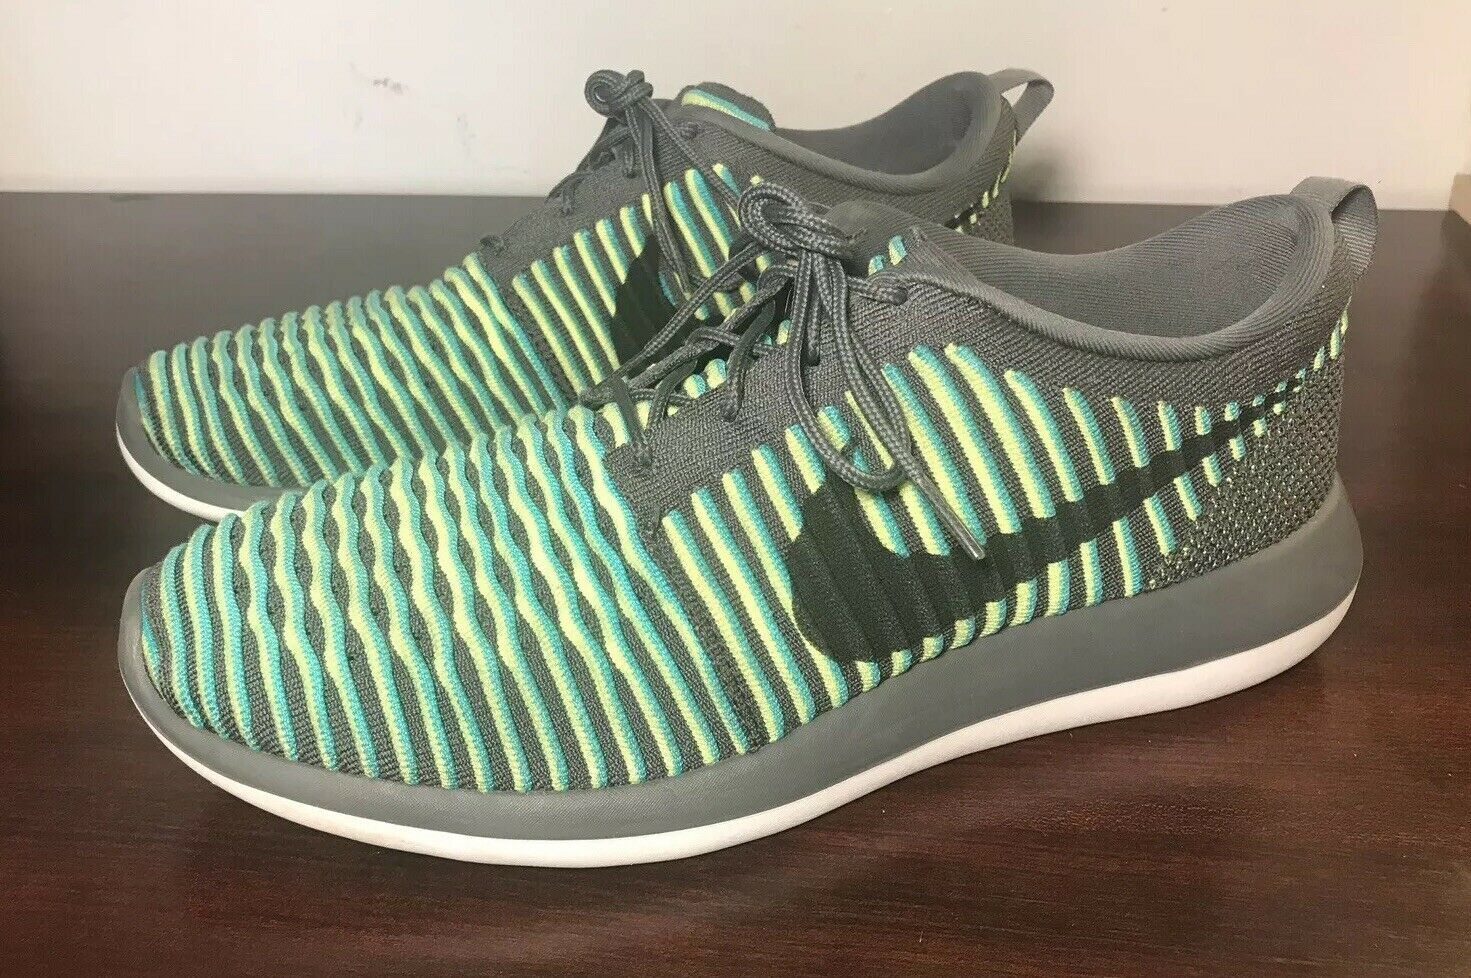 0ed8c5b9b016 Nike Roshe Two 2 Flyknit bluee Grey Fluorescent yellow Black size 11.5  5802bd